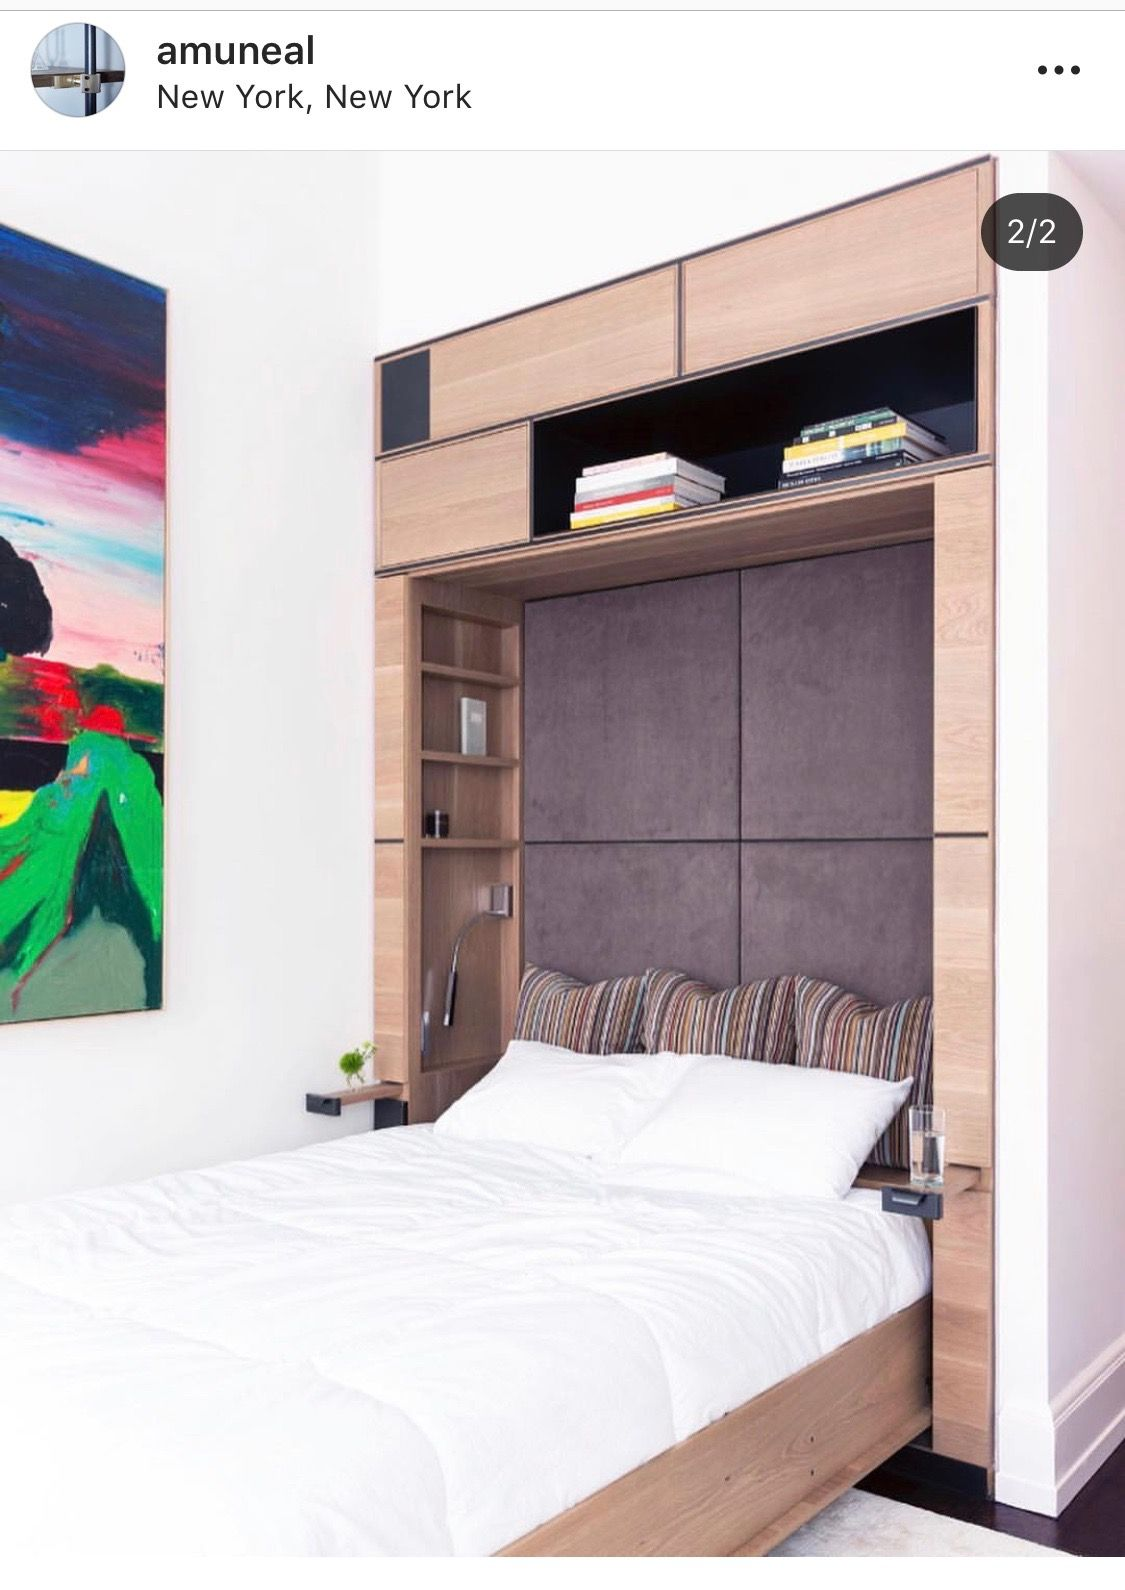 Murphy bed Murphy bed, Bed, Upholstered headboard